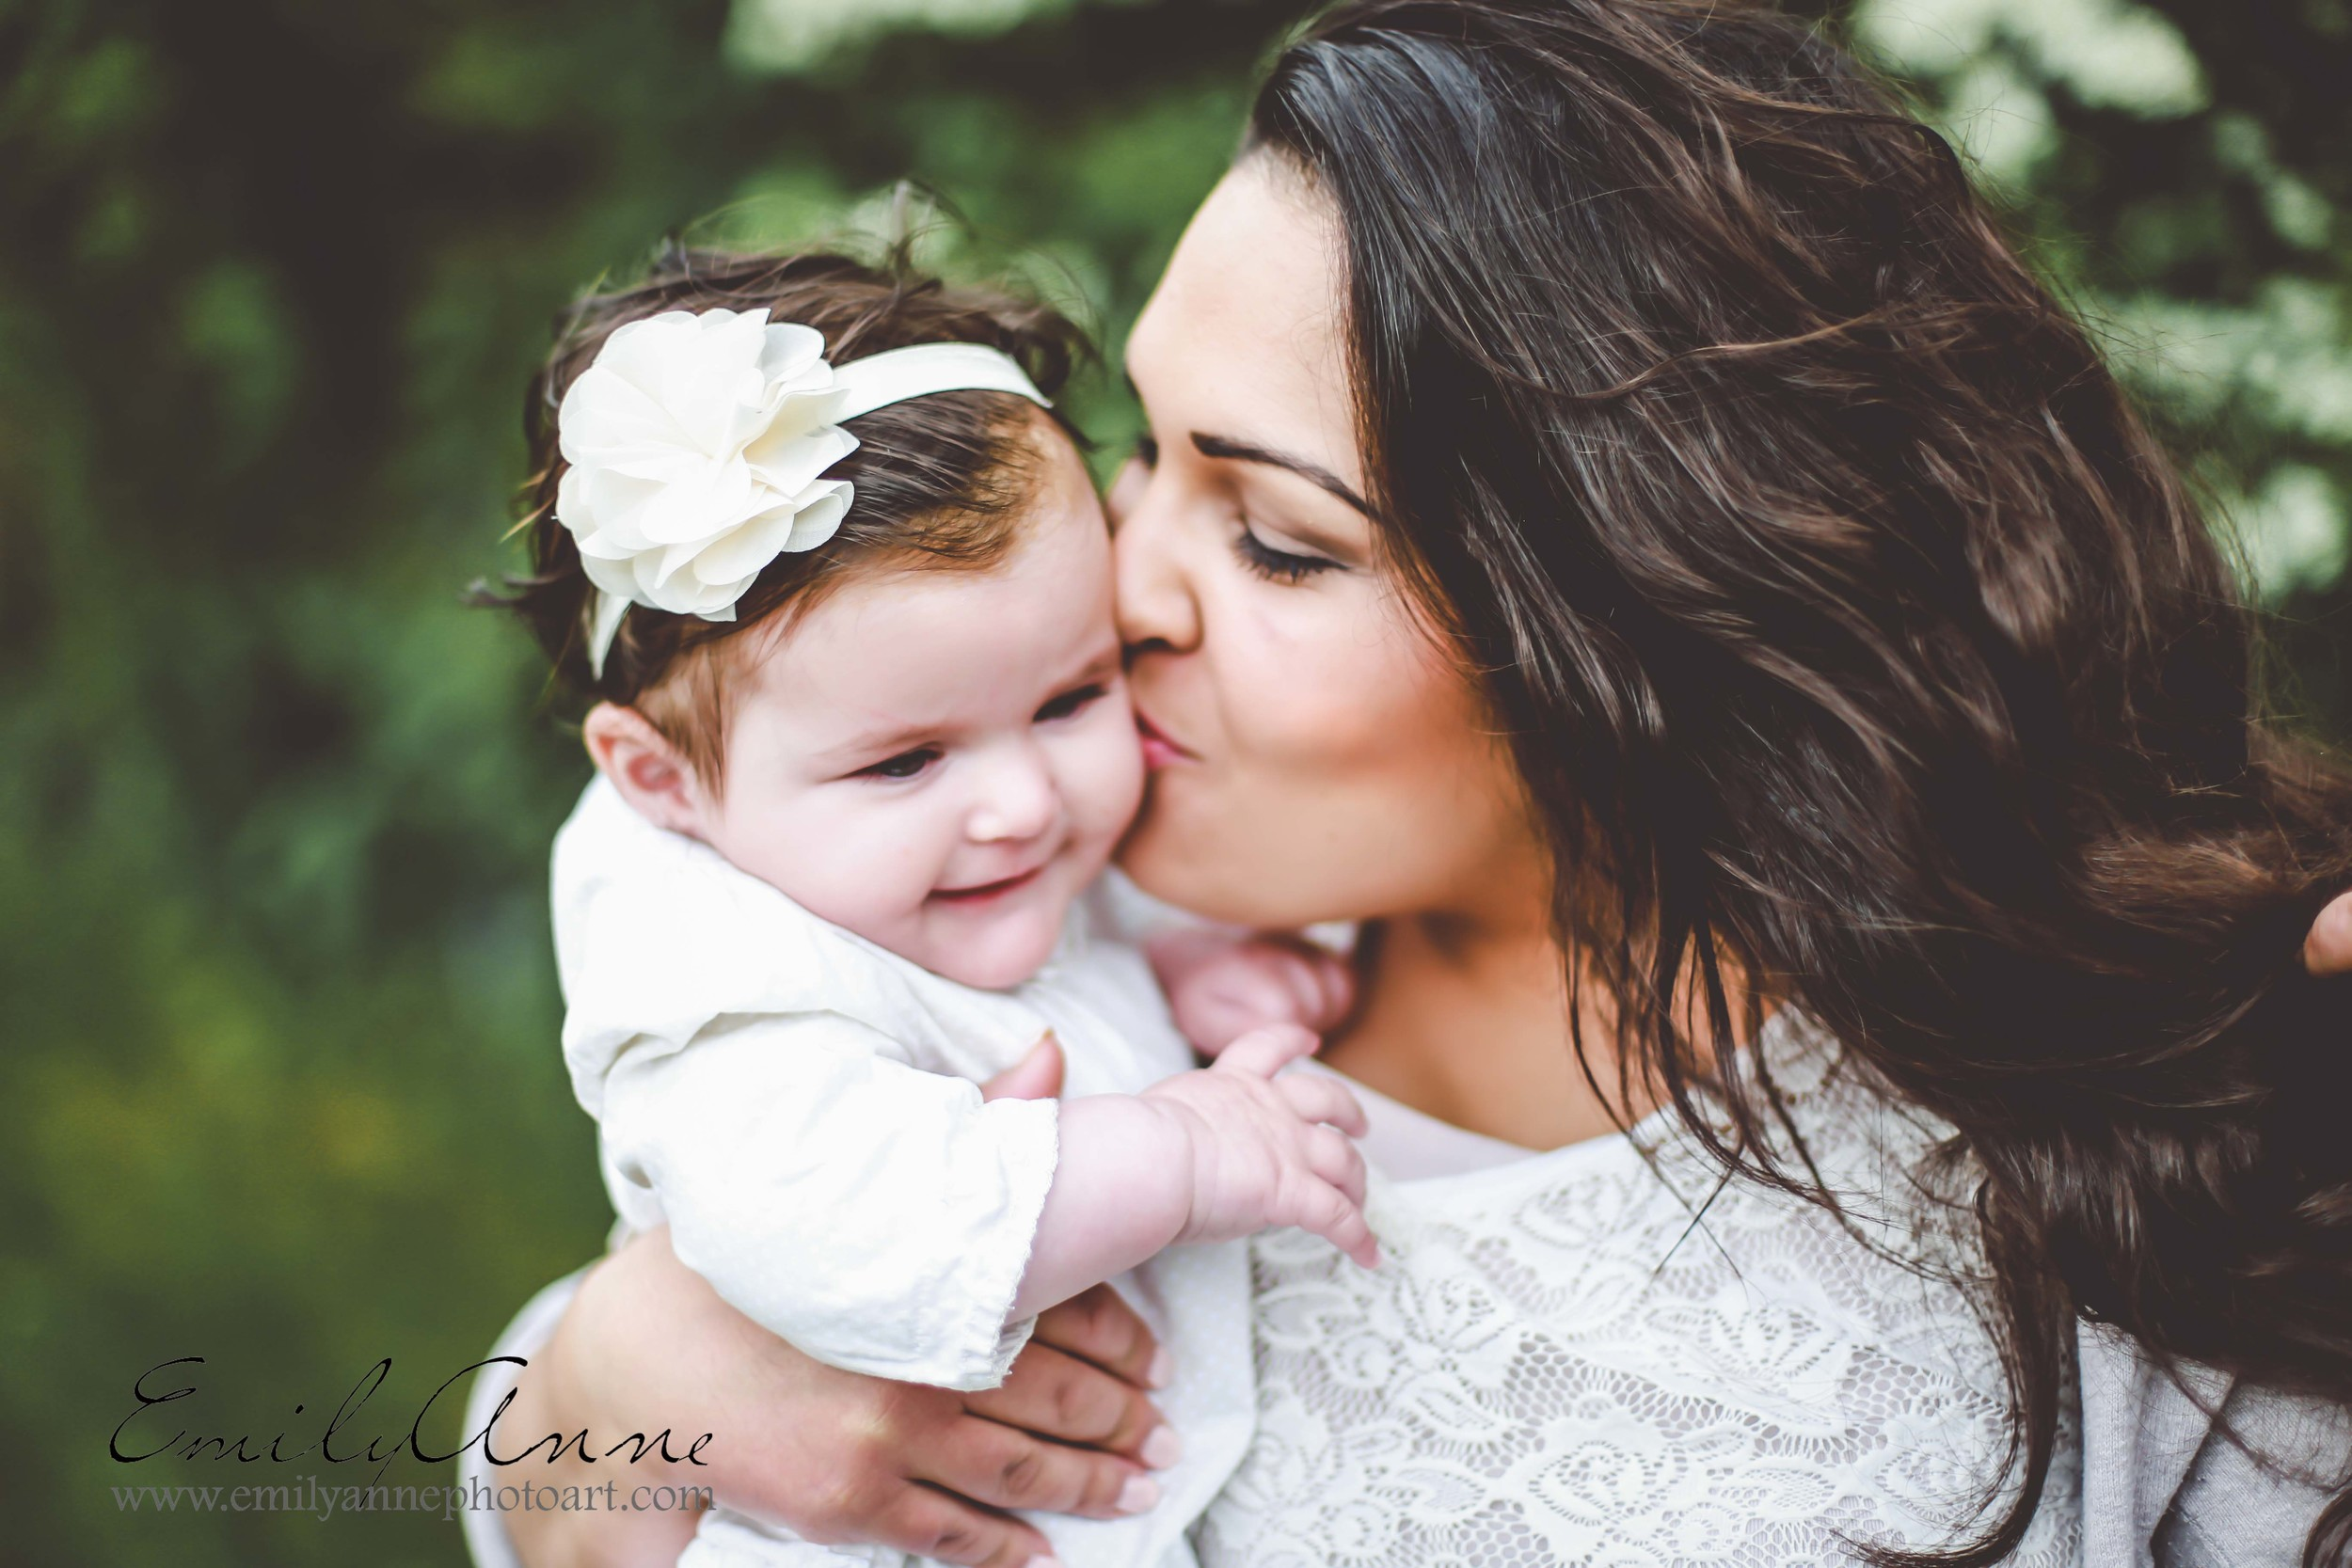 swiss lifestyle child and wedding photographer emily anne photography top nashville family and baby photographer shot in Switzerland